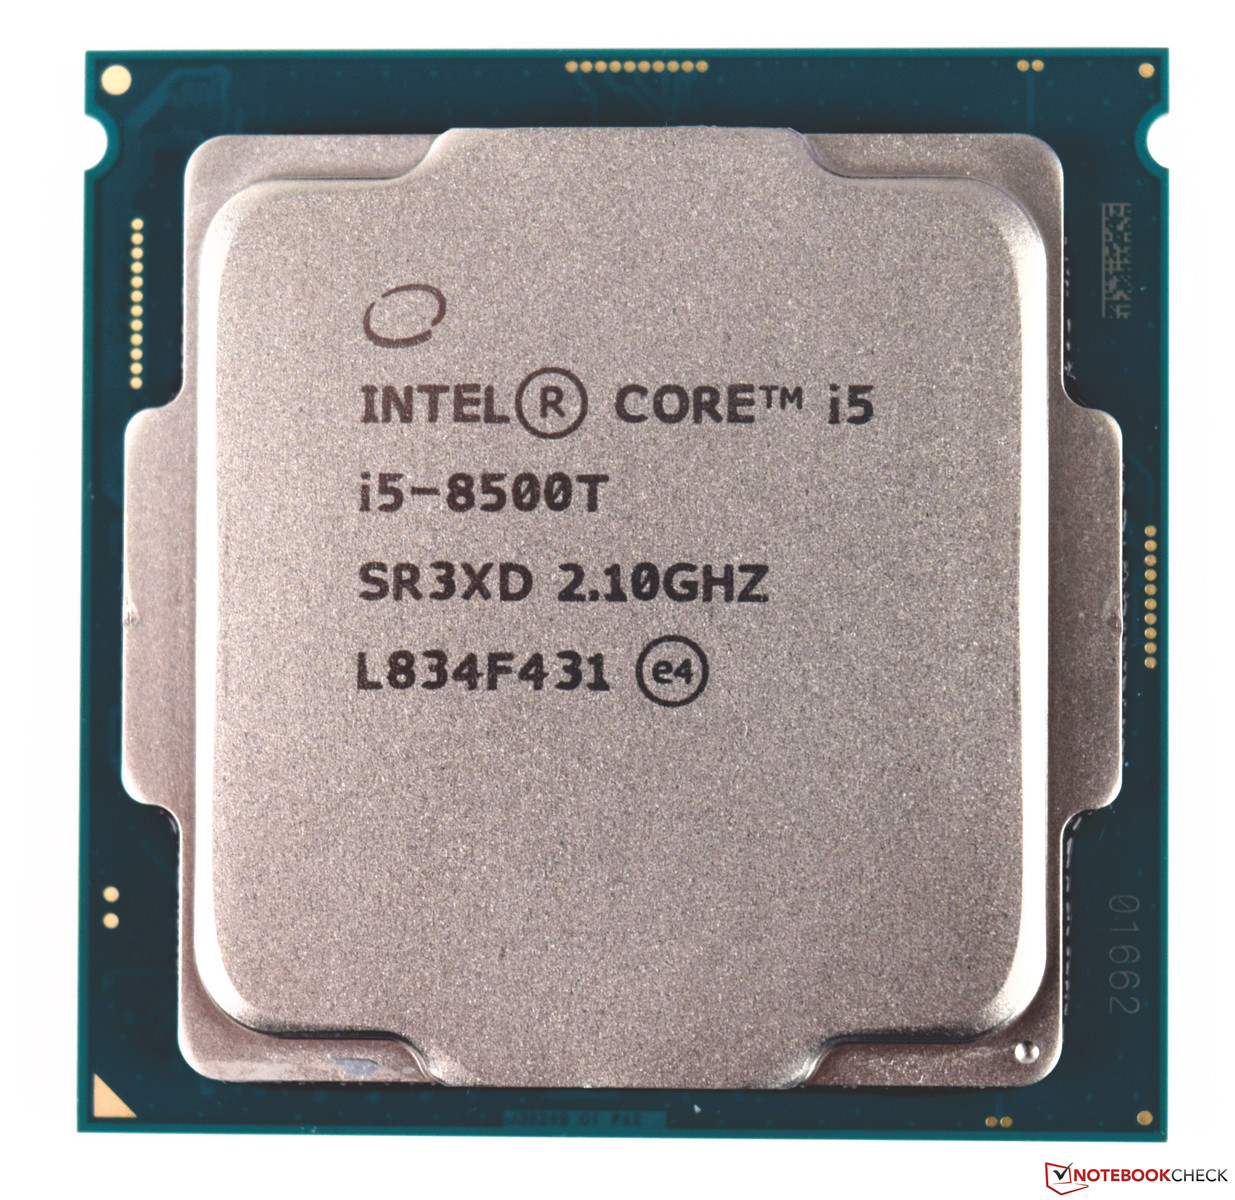 Intel Core i5-8500T (6 cores, 6 Threads, 2 1 GHz, 35 W